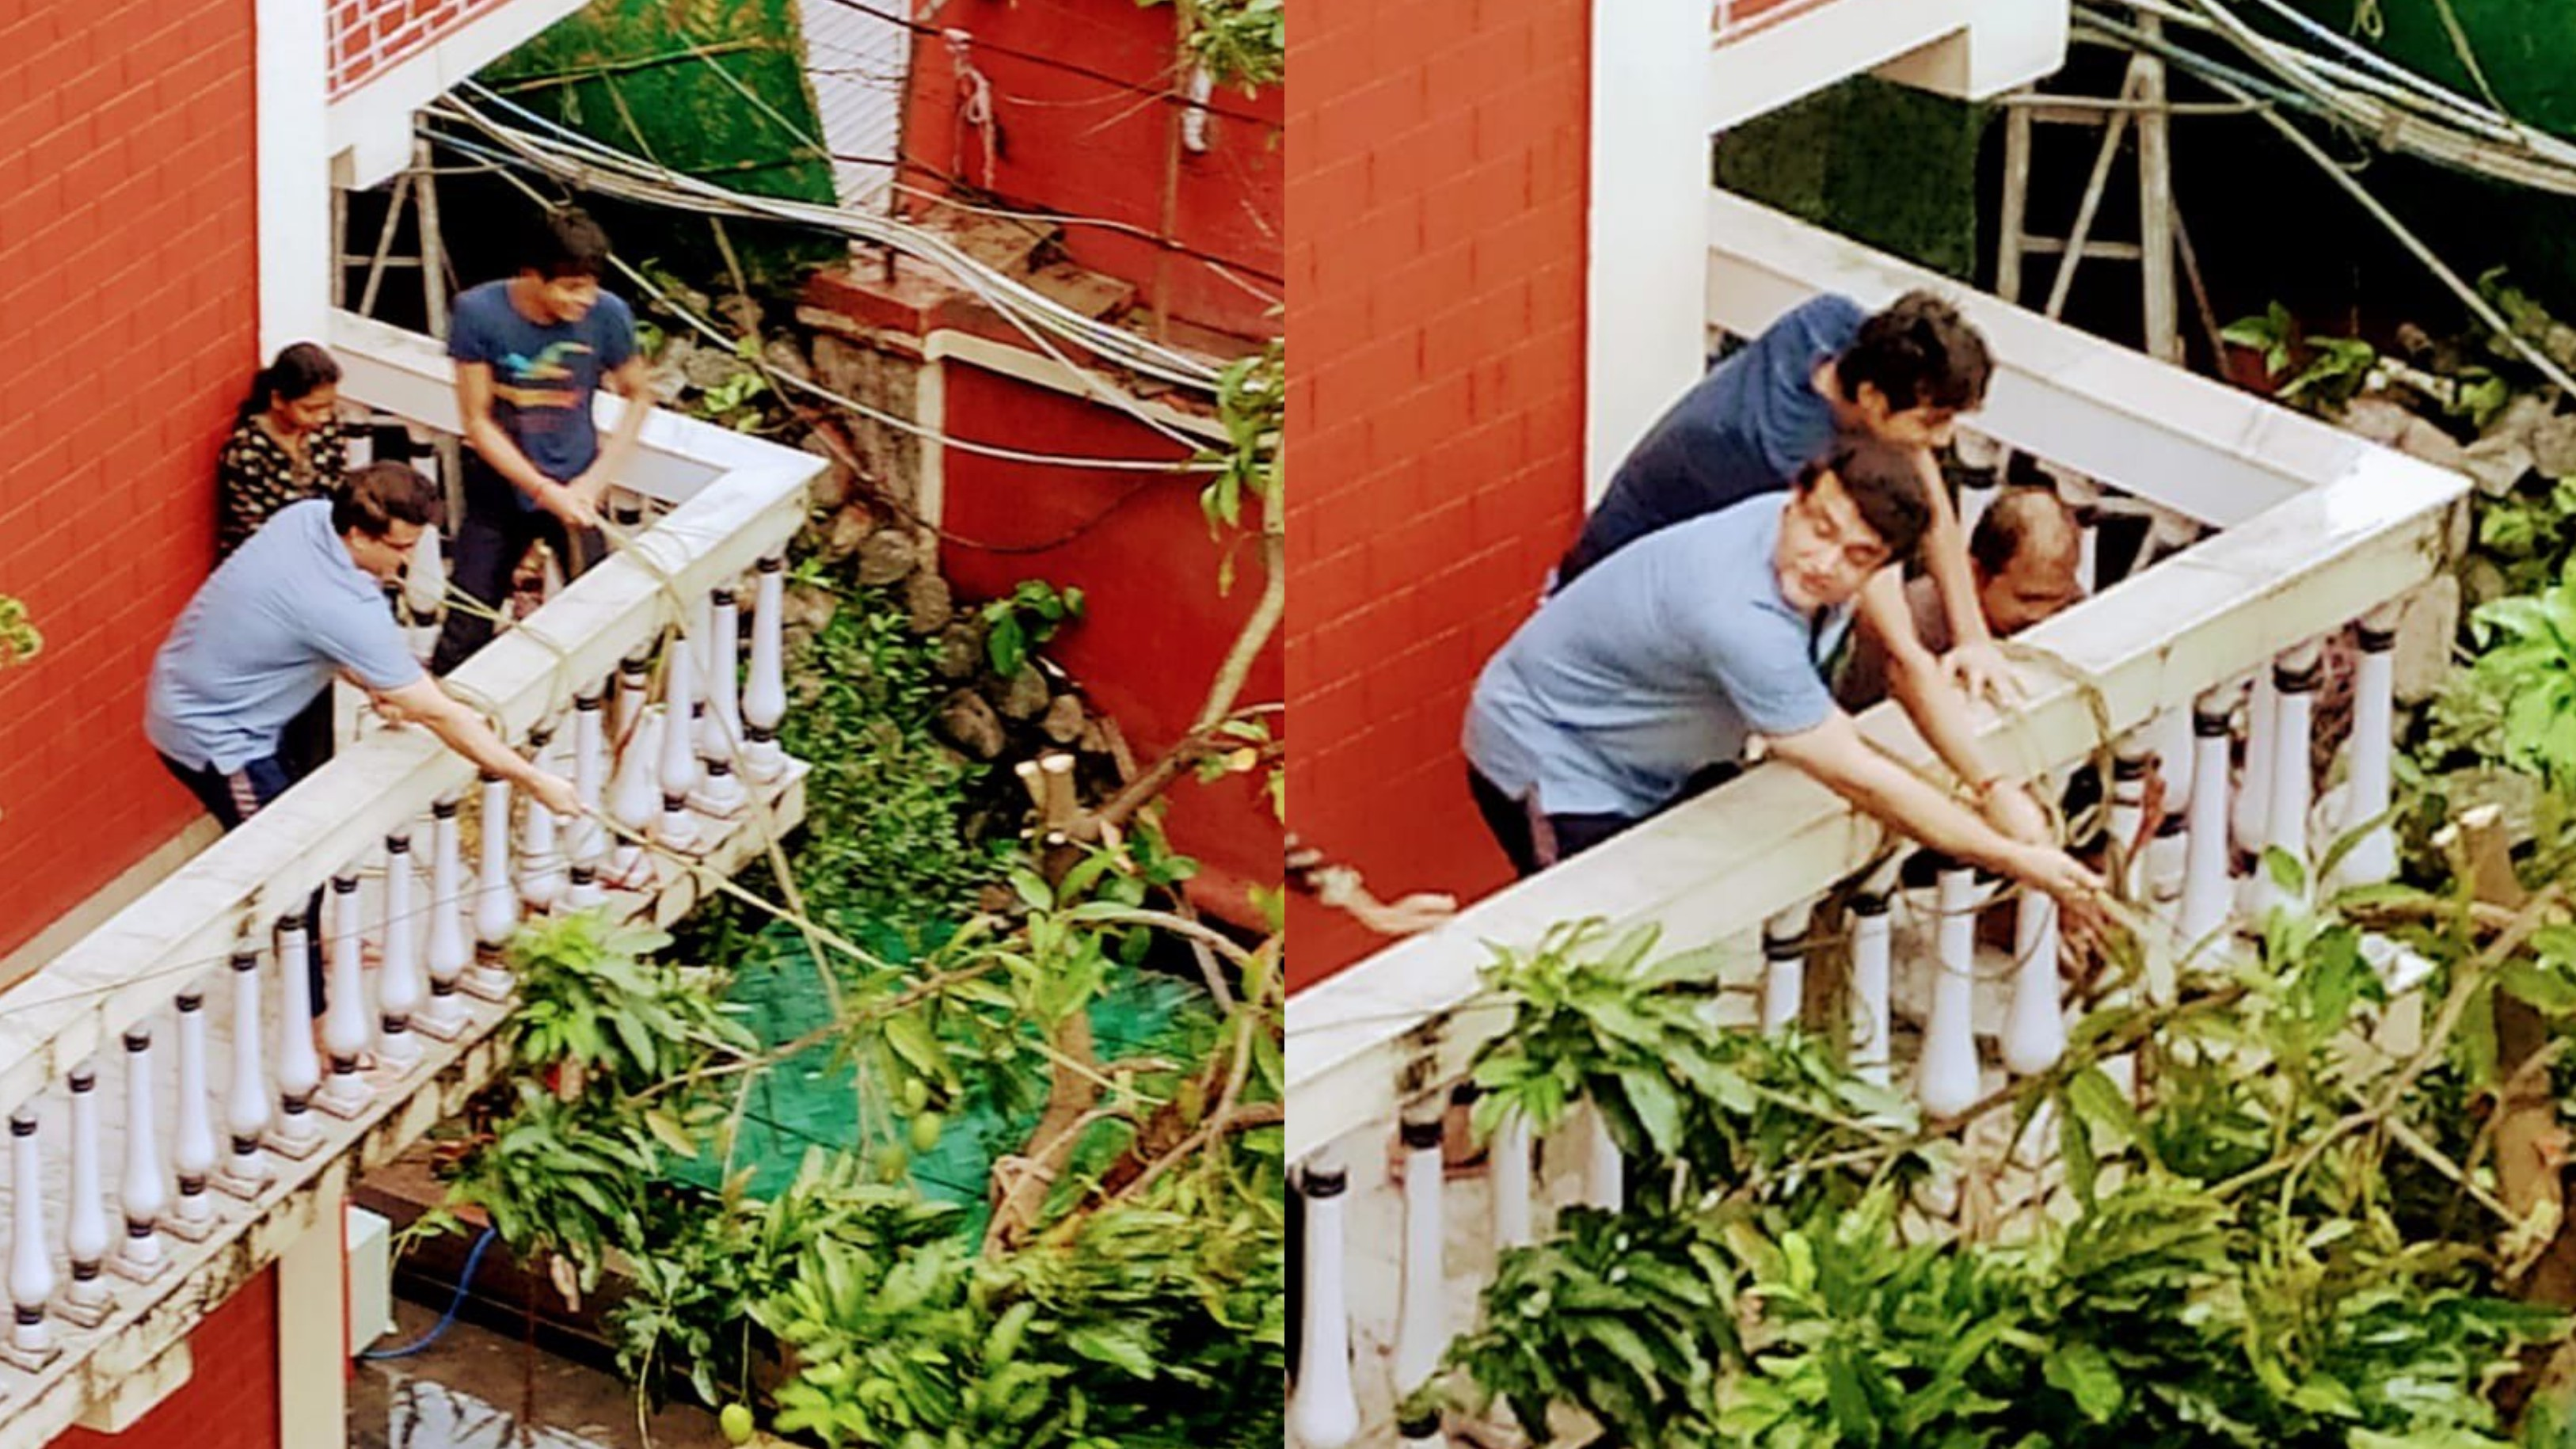 Ganguly saves a mango tree uprooted by Cyclone Amphan at home; fans link it to 2002 NatWest final